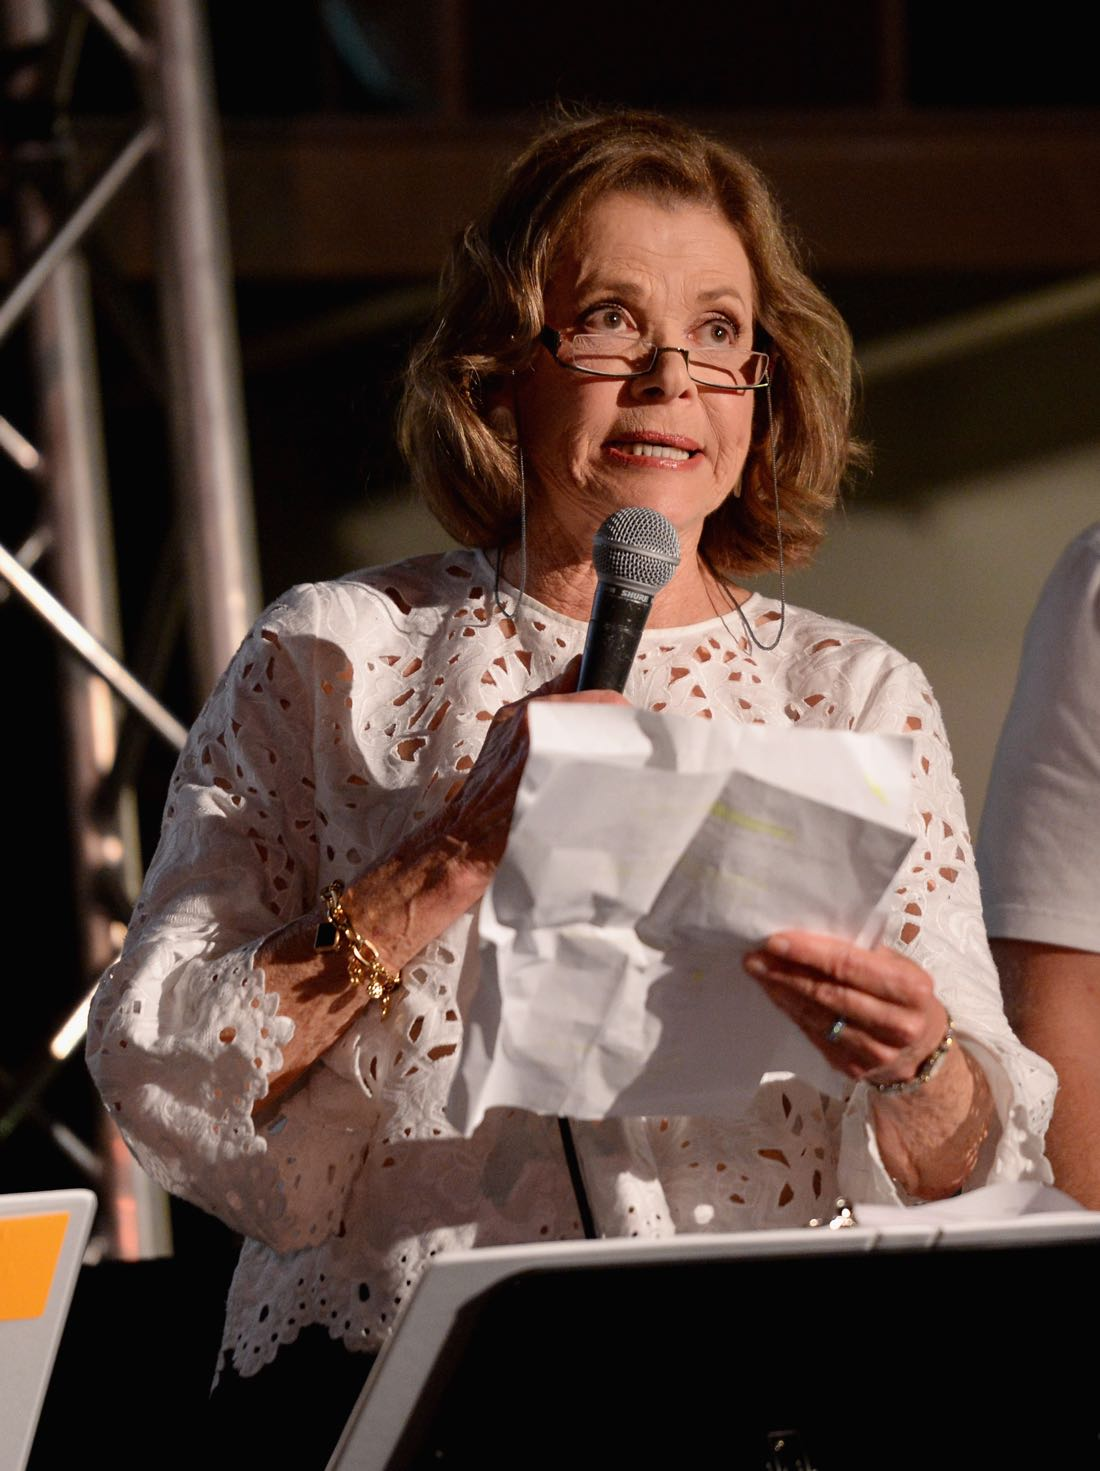 """SAN DIEGO, CA - JULY 21: Actress Jessica Walter speaks at """"ARCHER Live!"""" during Comic-Con International 2016 at Hilton Bayfront on July 21, 2016 in San Diego, California. (Photo by Michael Kovac/Getty Images for FX)"""